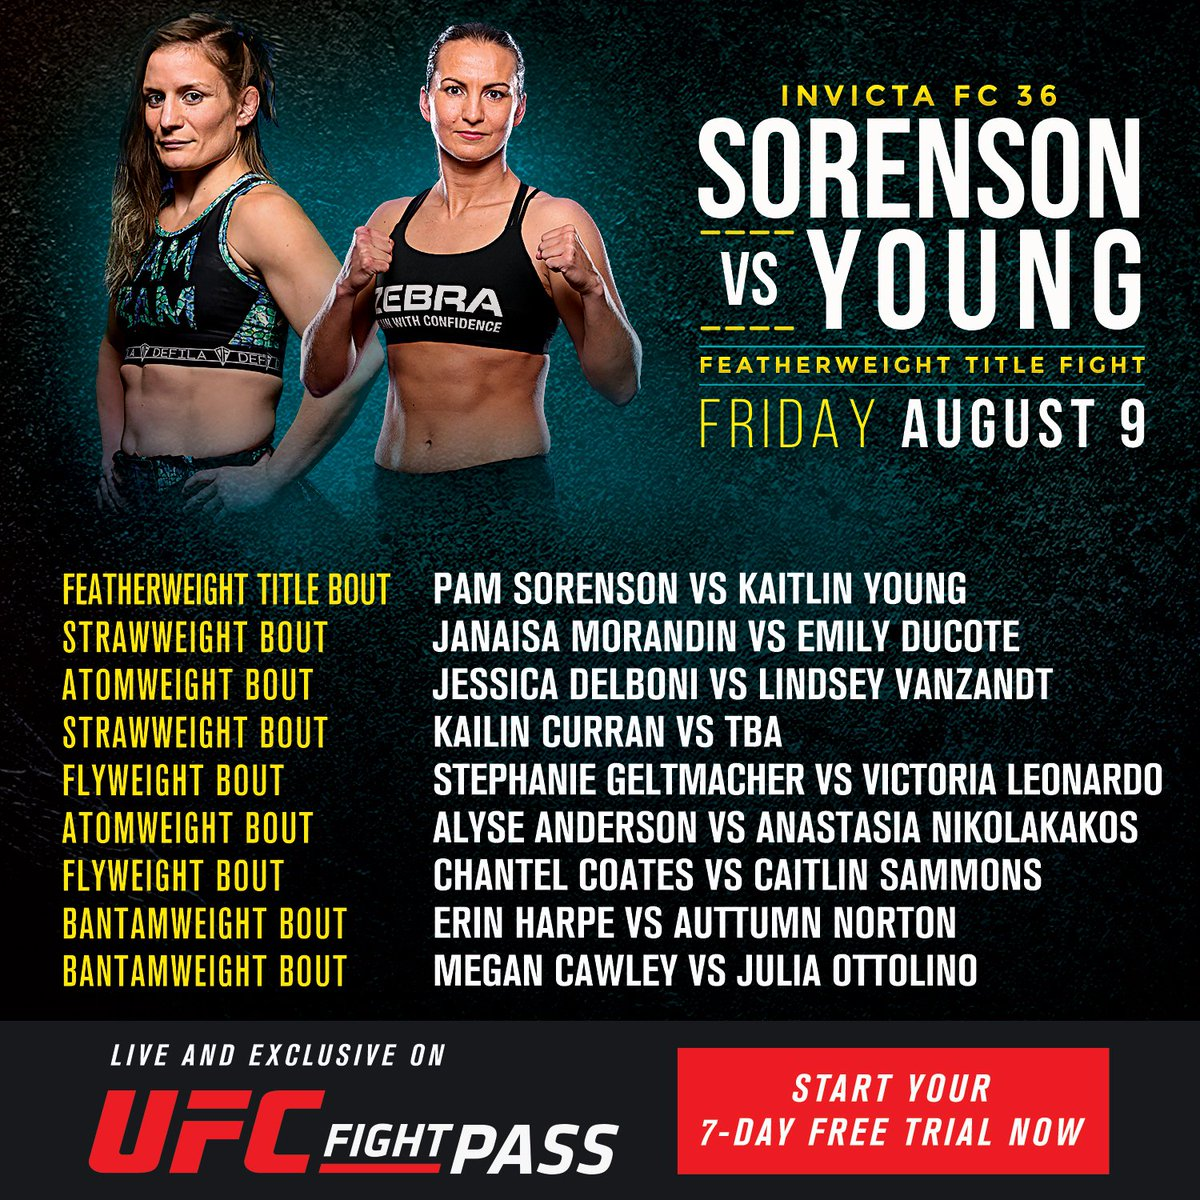 #InvictaFC36 returns this August 9th and features a stacked card with @PamBam_Sorenson taking on @kaitlin_young for the vacant featherweight title!   🎟️: http://bit.ly/2KUATyG